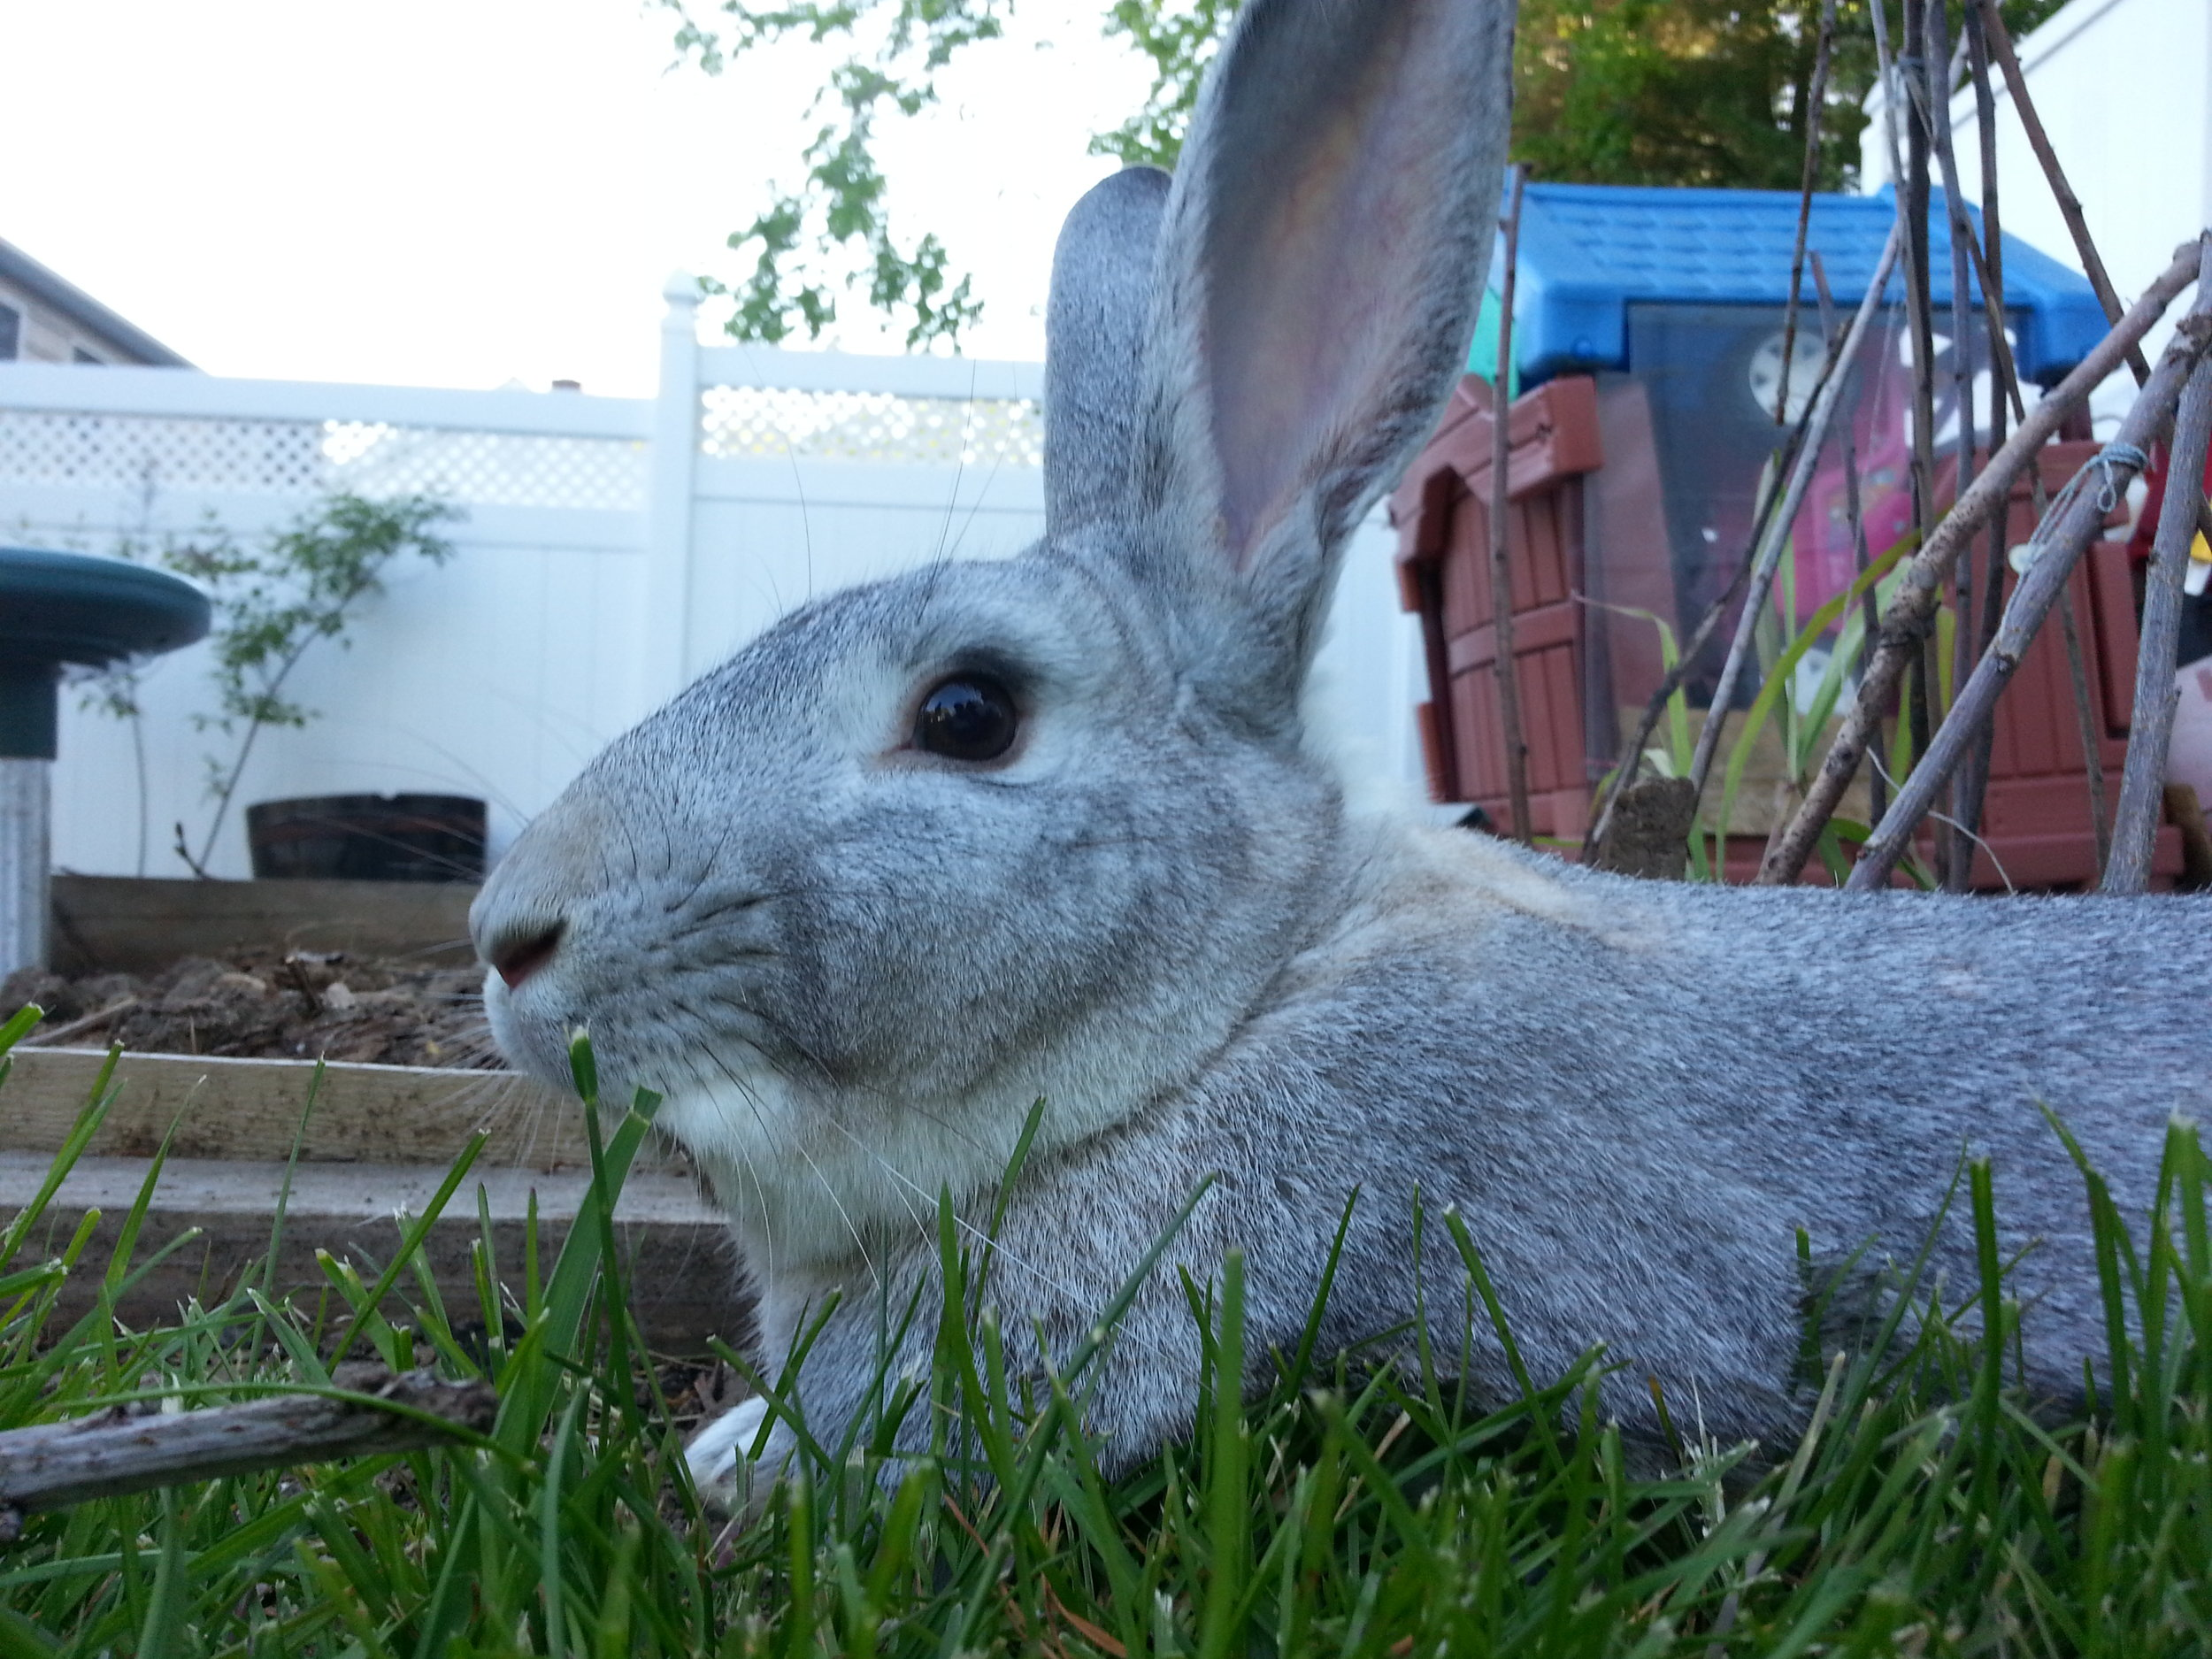 After a Brief Rest, Bunny Gets Back to Exploring the Backyard 1